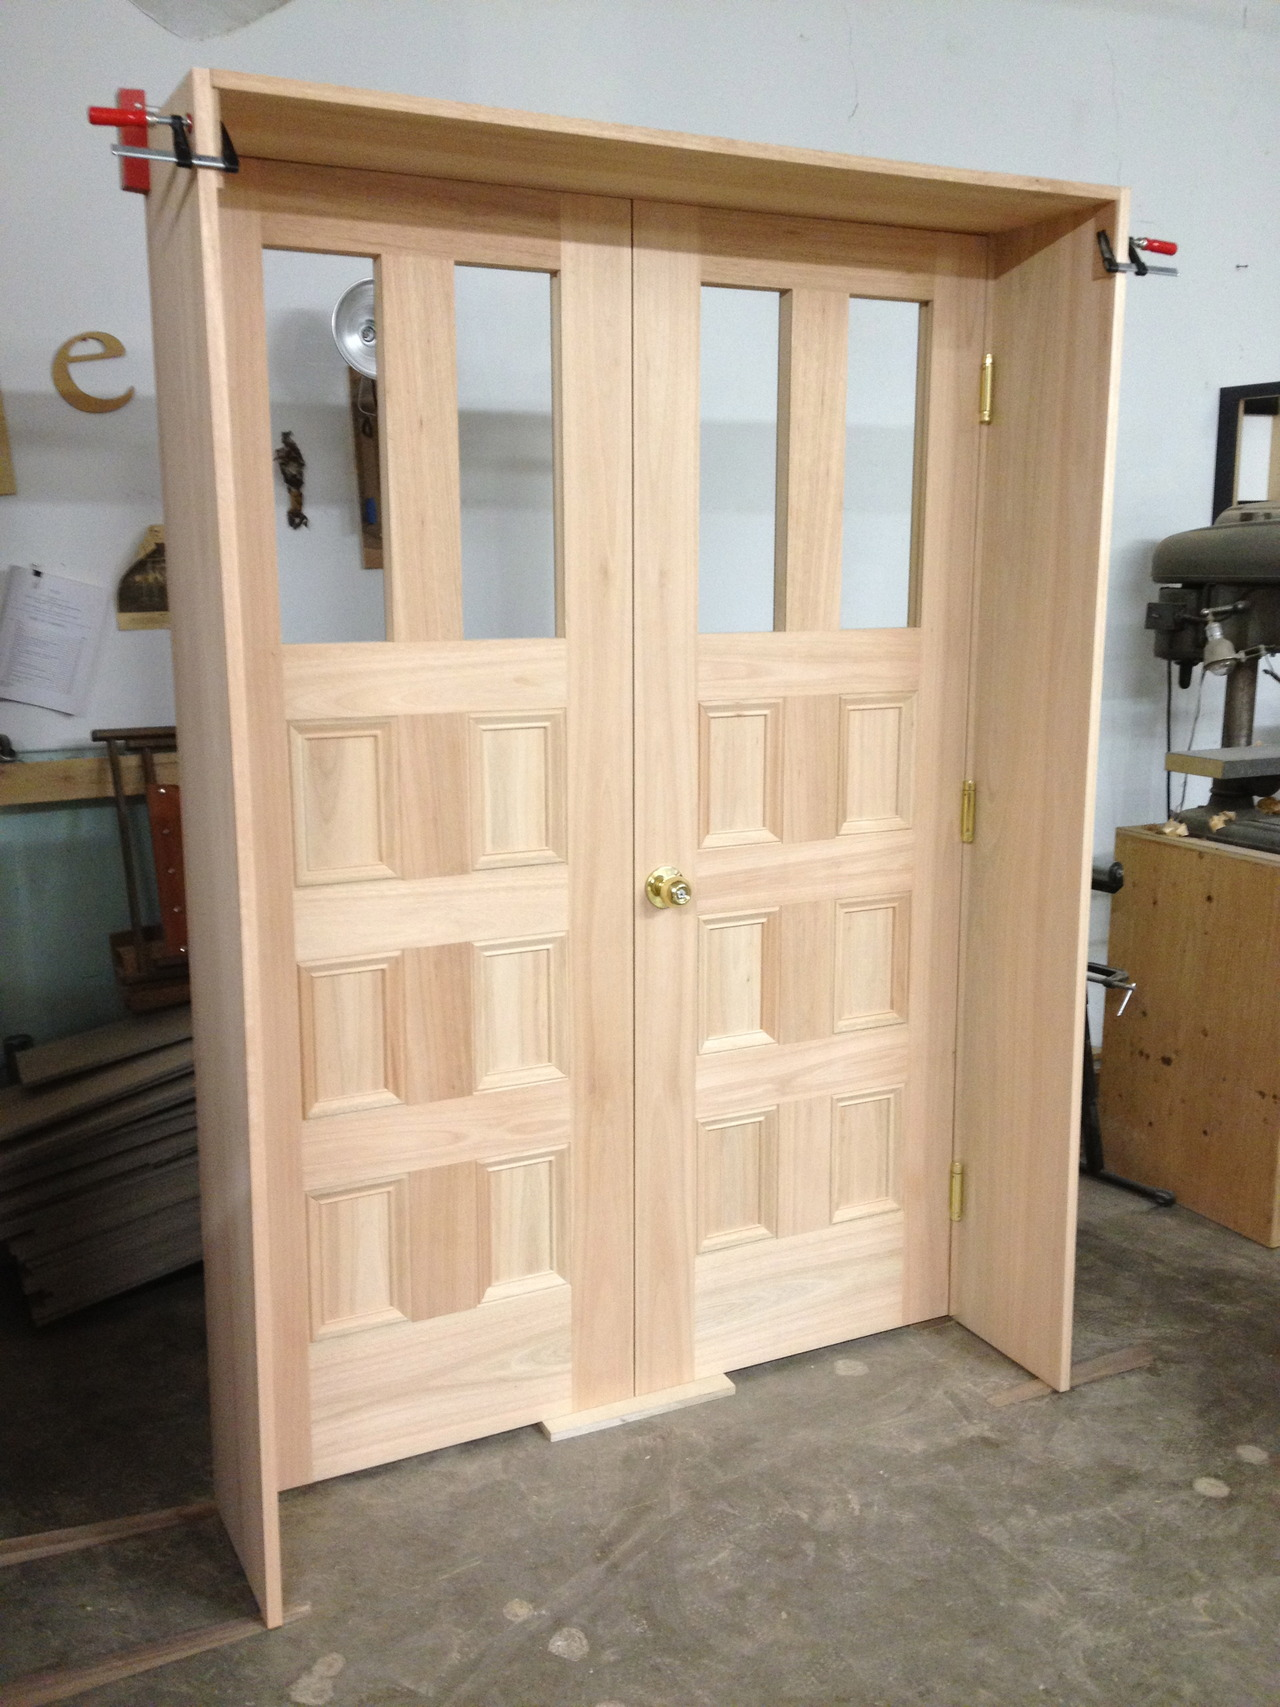 The dry fit: stave core doors in FSC Eucalyptus